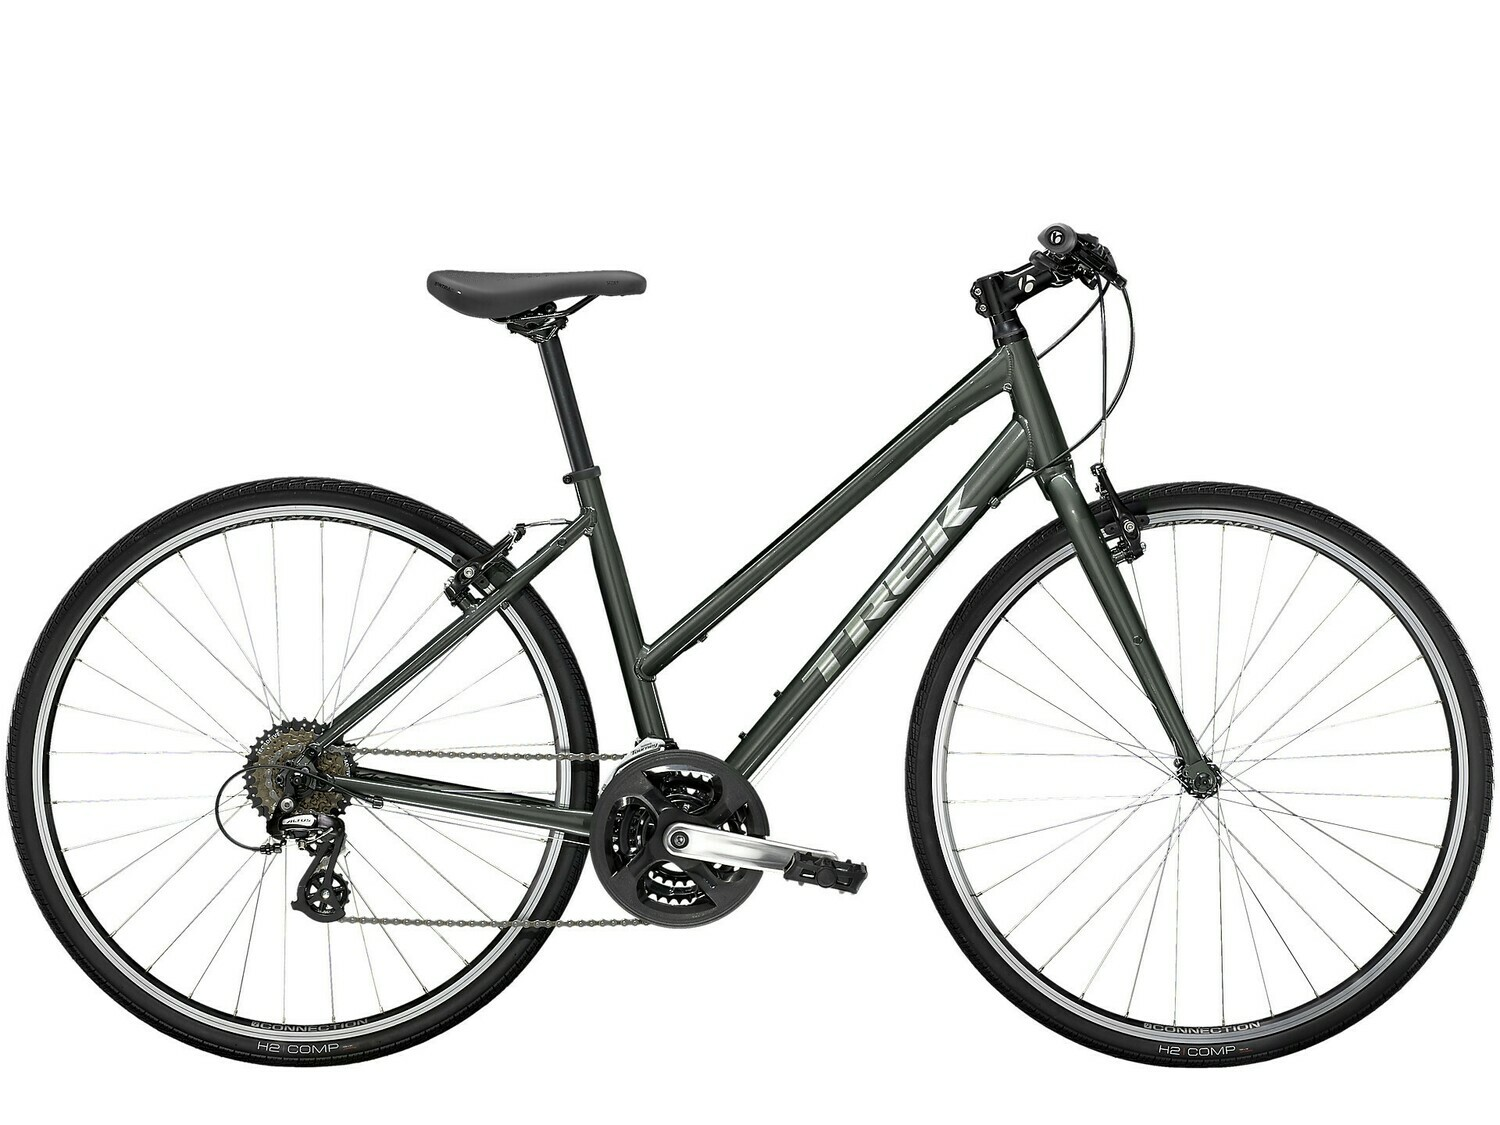 2021 TREK FX 1 STAGGER LADIES HYBRID - LARGE